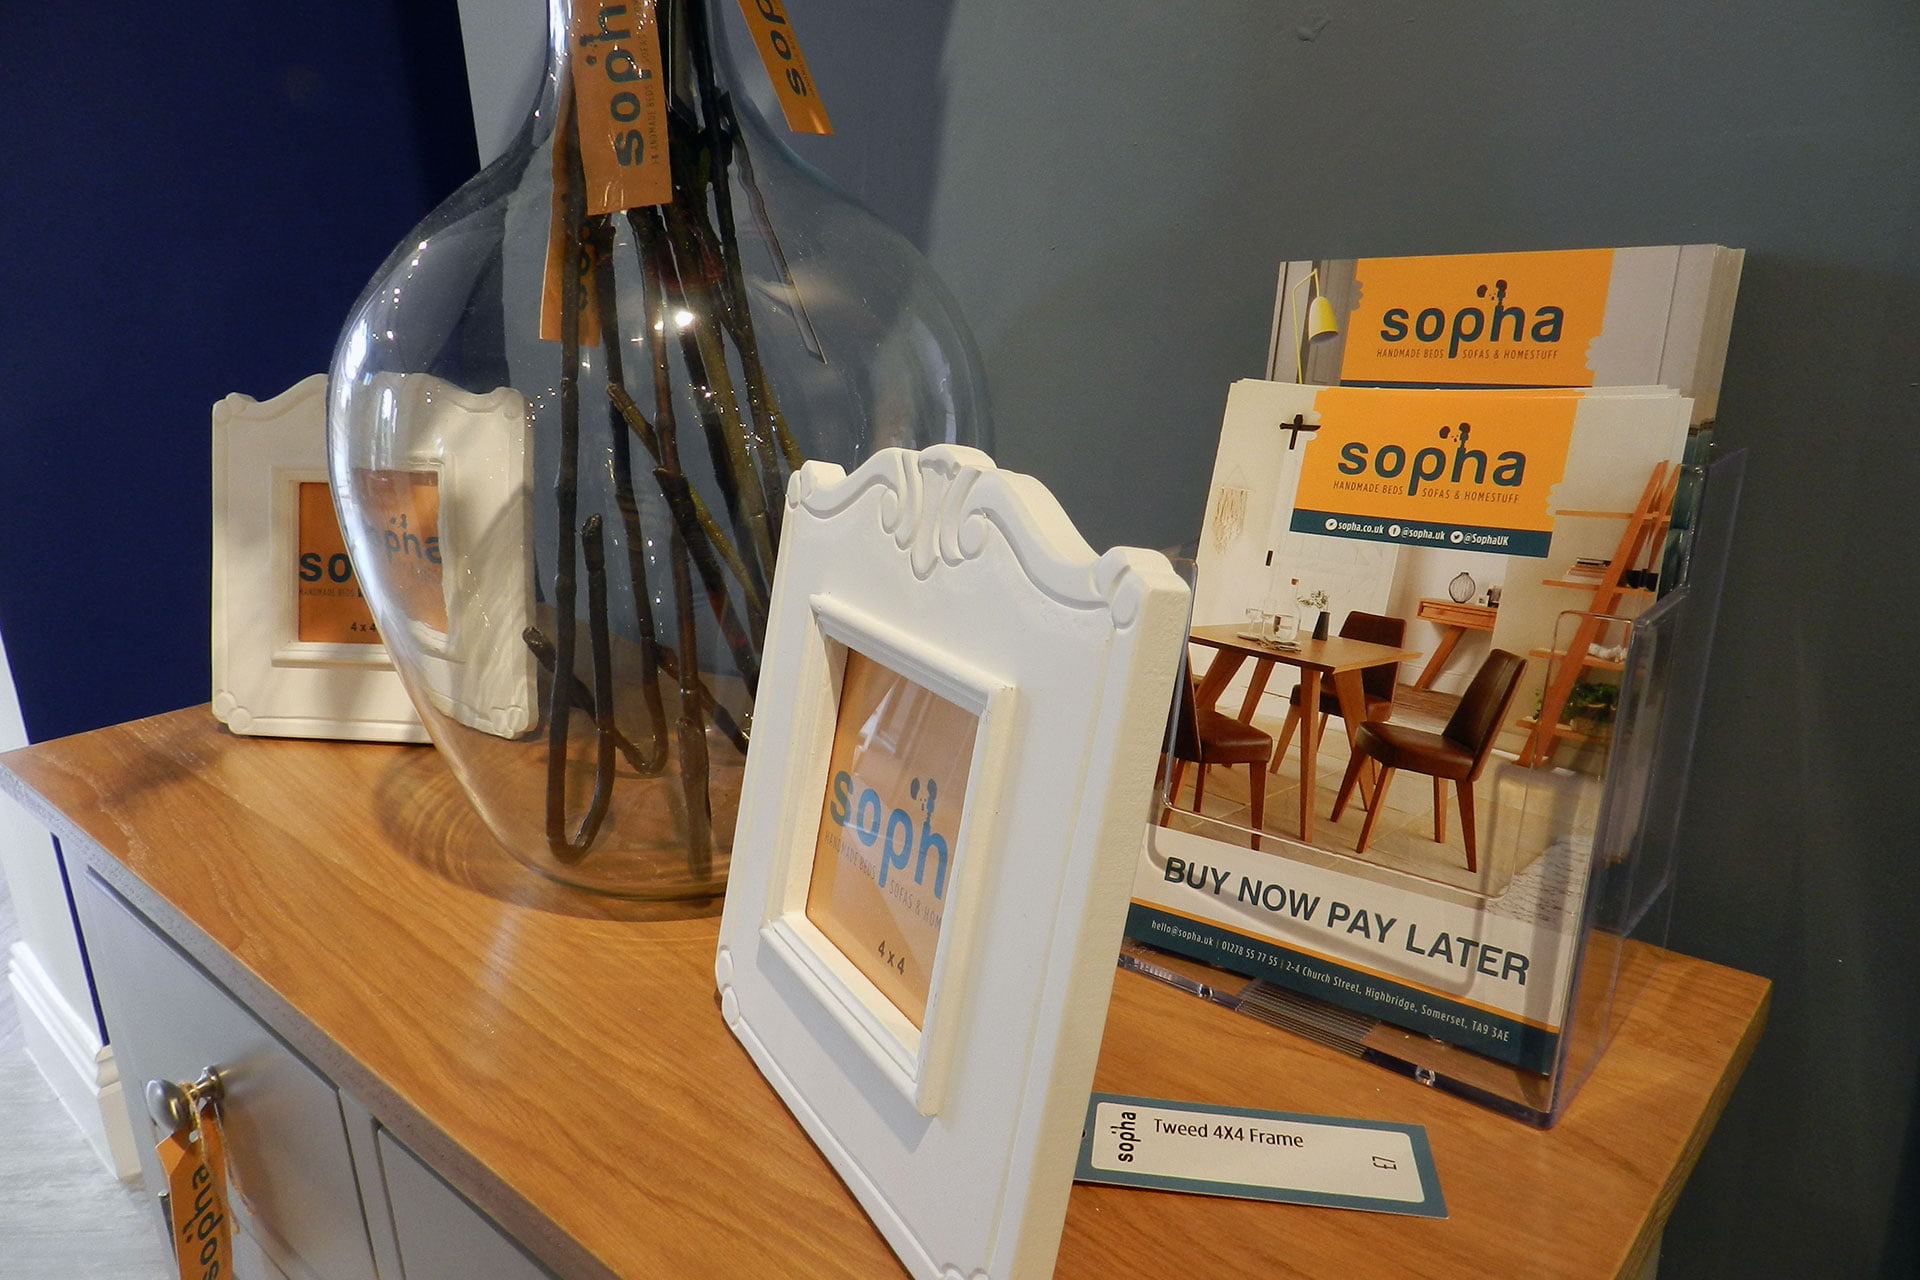 Sopha-beds-retail-leaflet-design-Somerset-1 The Importance of Branding & Graphic Design in a Business